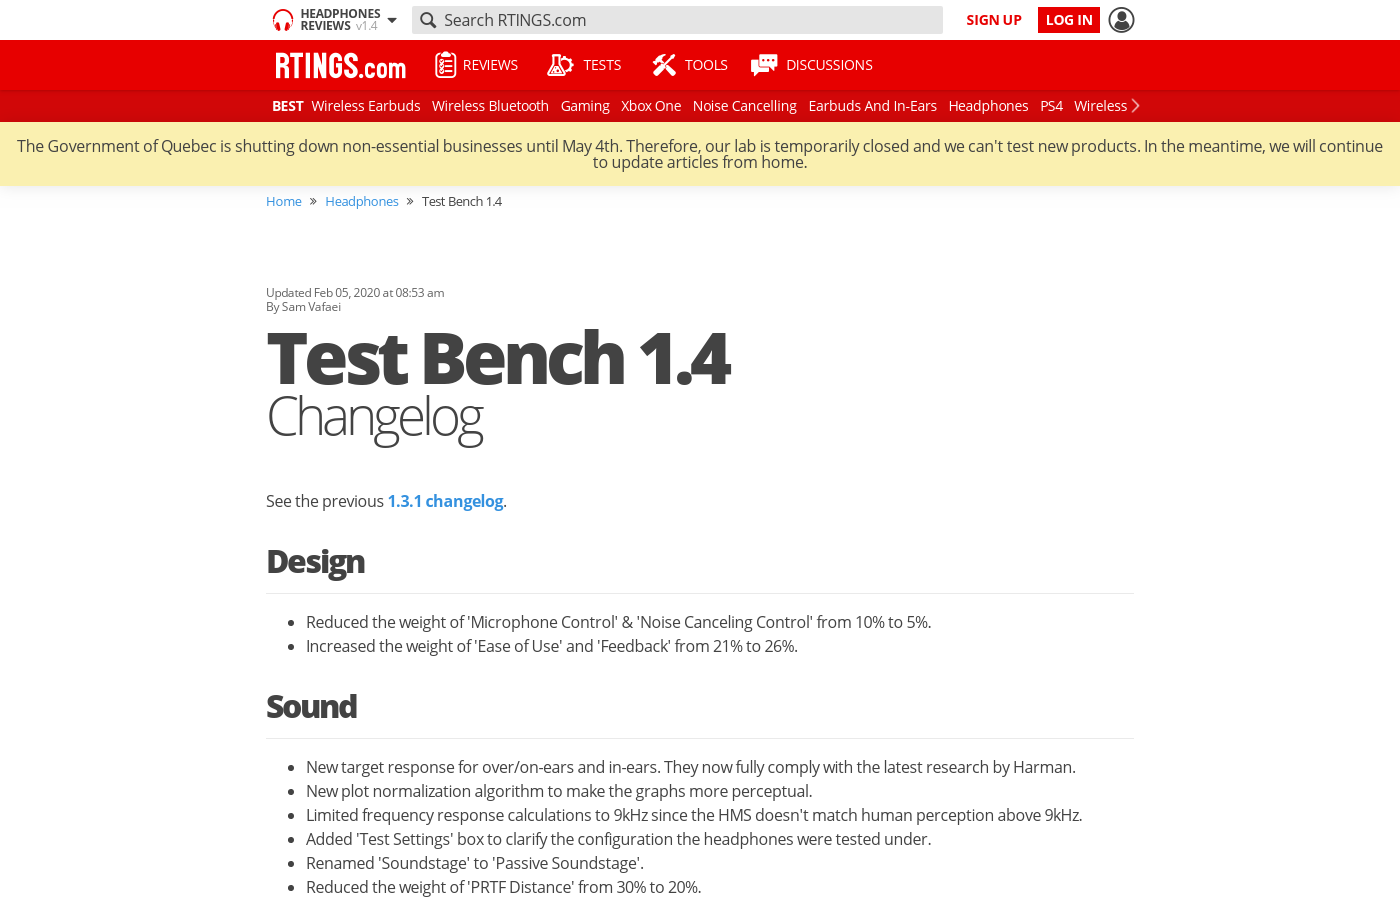 Test Bench 1.4: Changelog